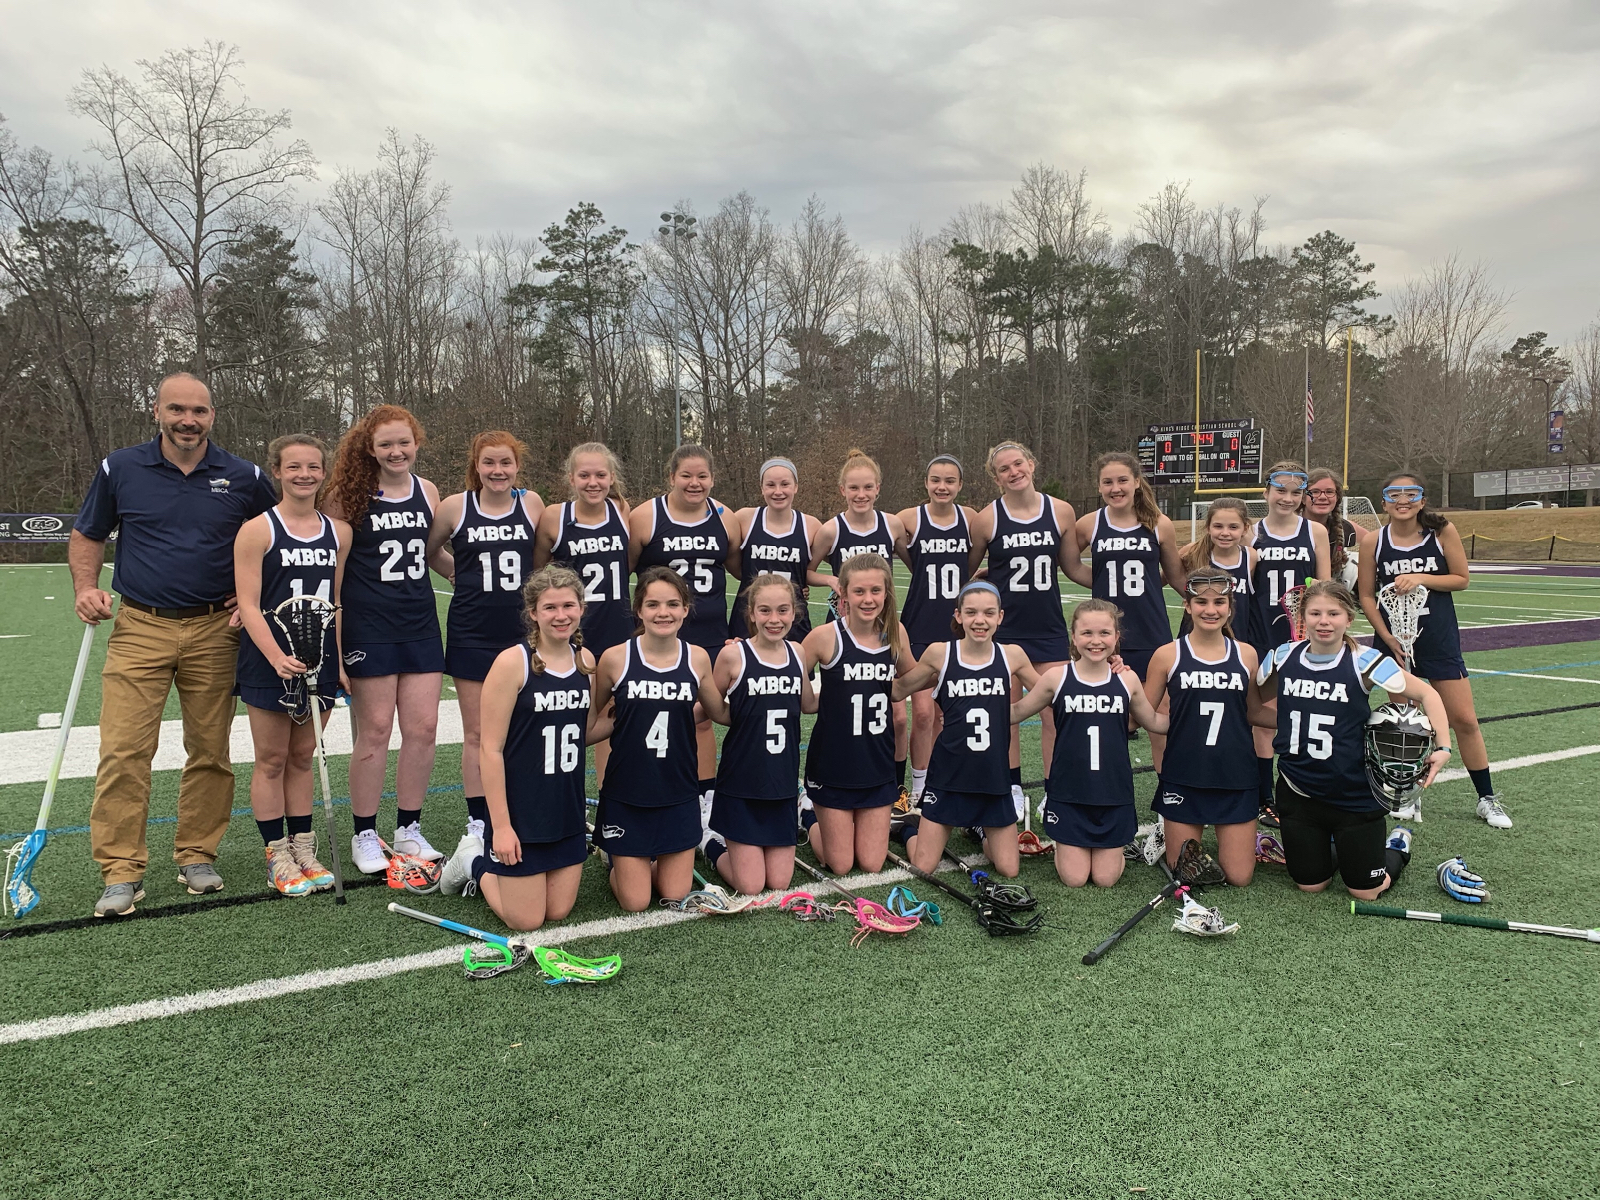 Another Historical Moment as MS Girls Lacrosse Plays First Game For MBCA